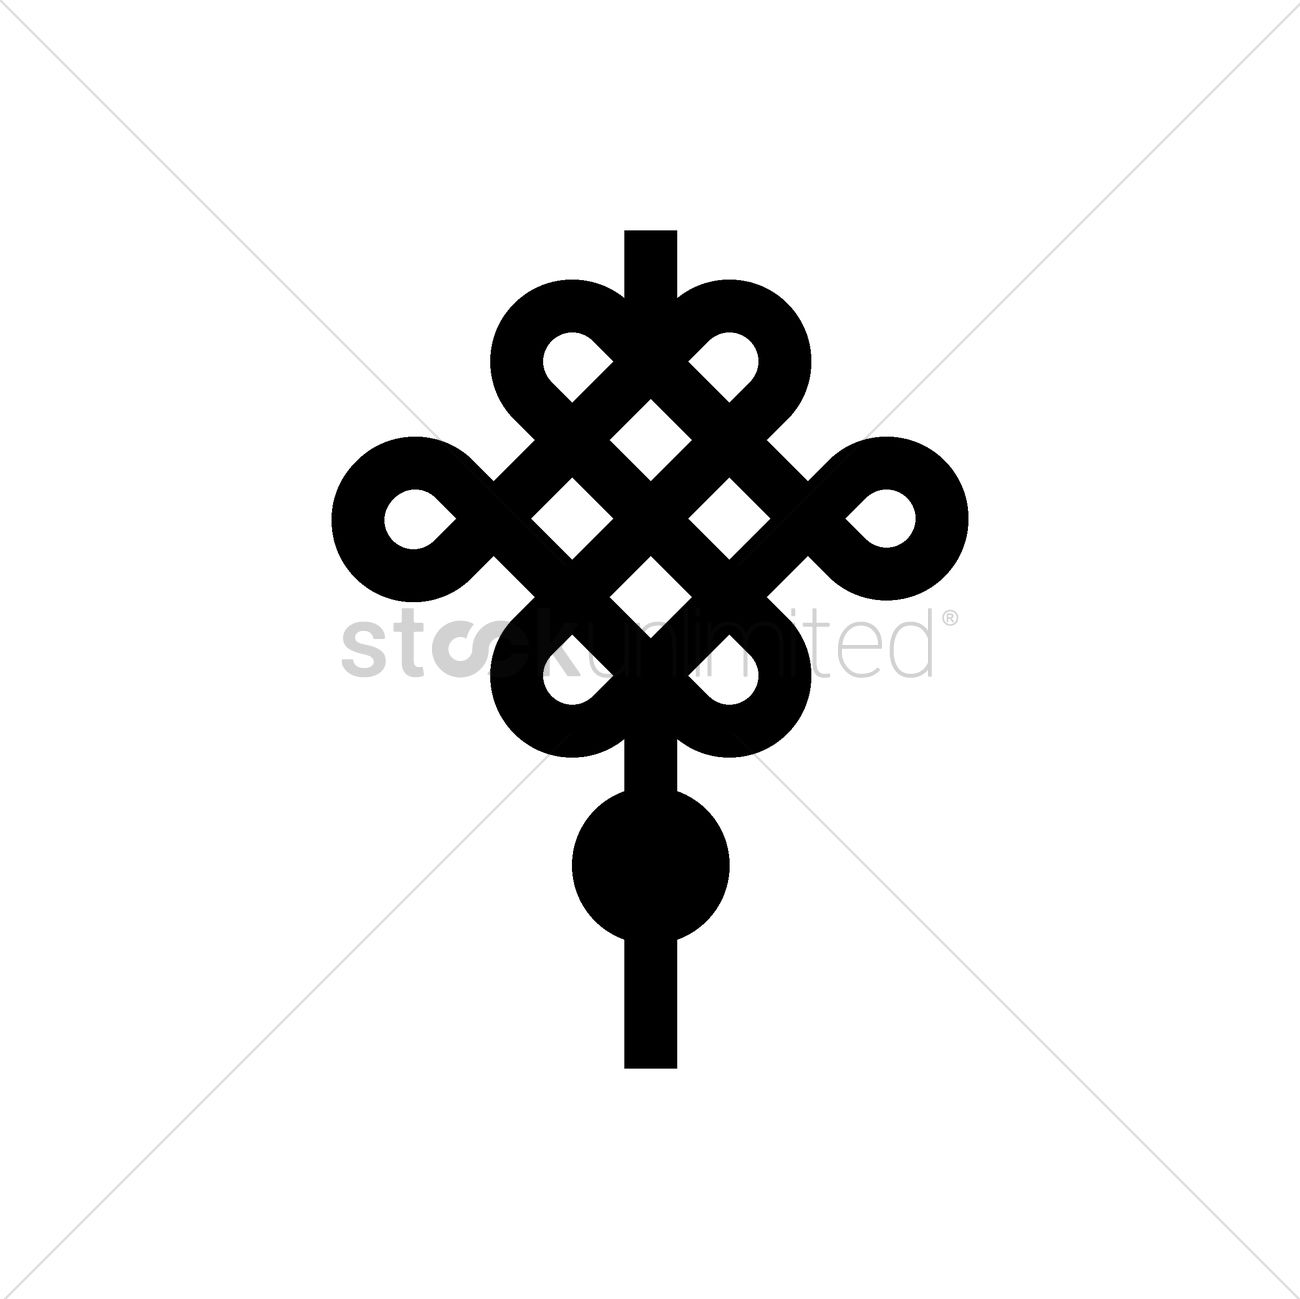 Chinese Knot Decoration Icon Vector Image 1979209 Stockunlimited